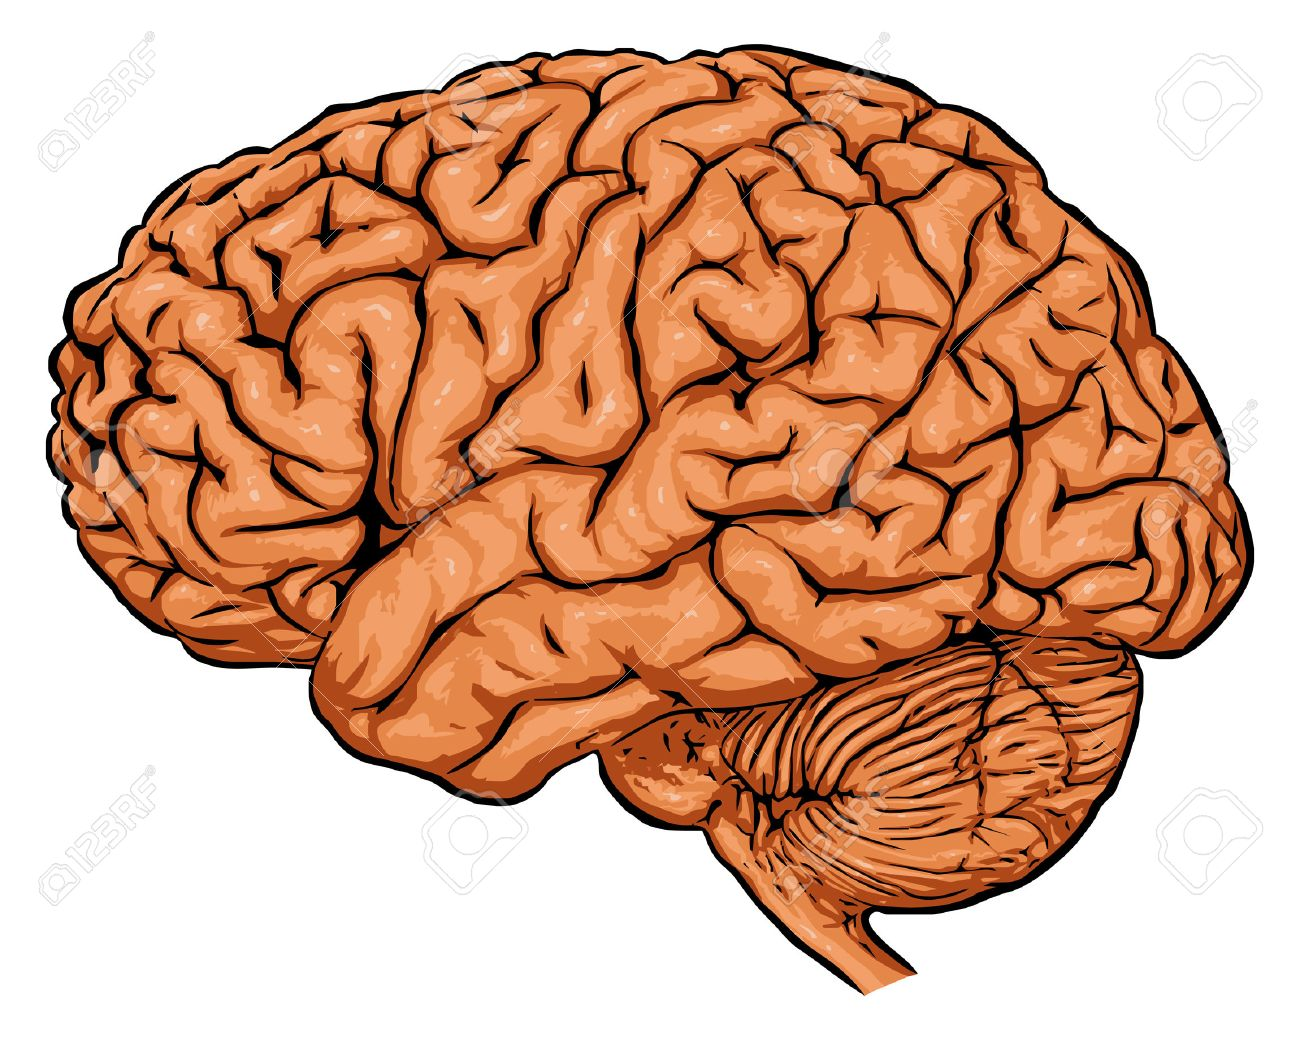 Image result for clipart the brain